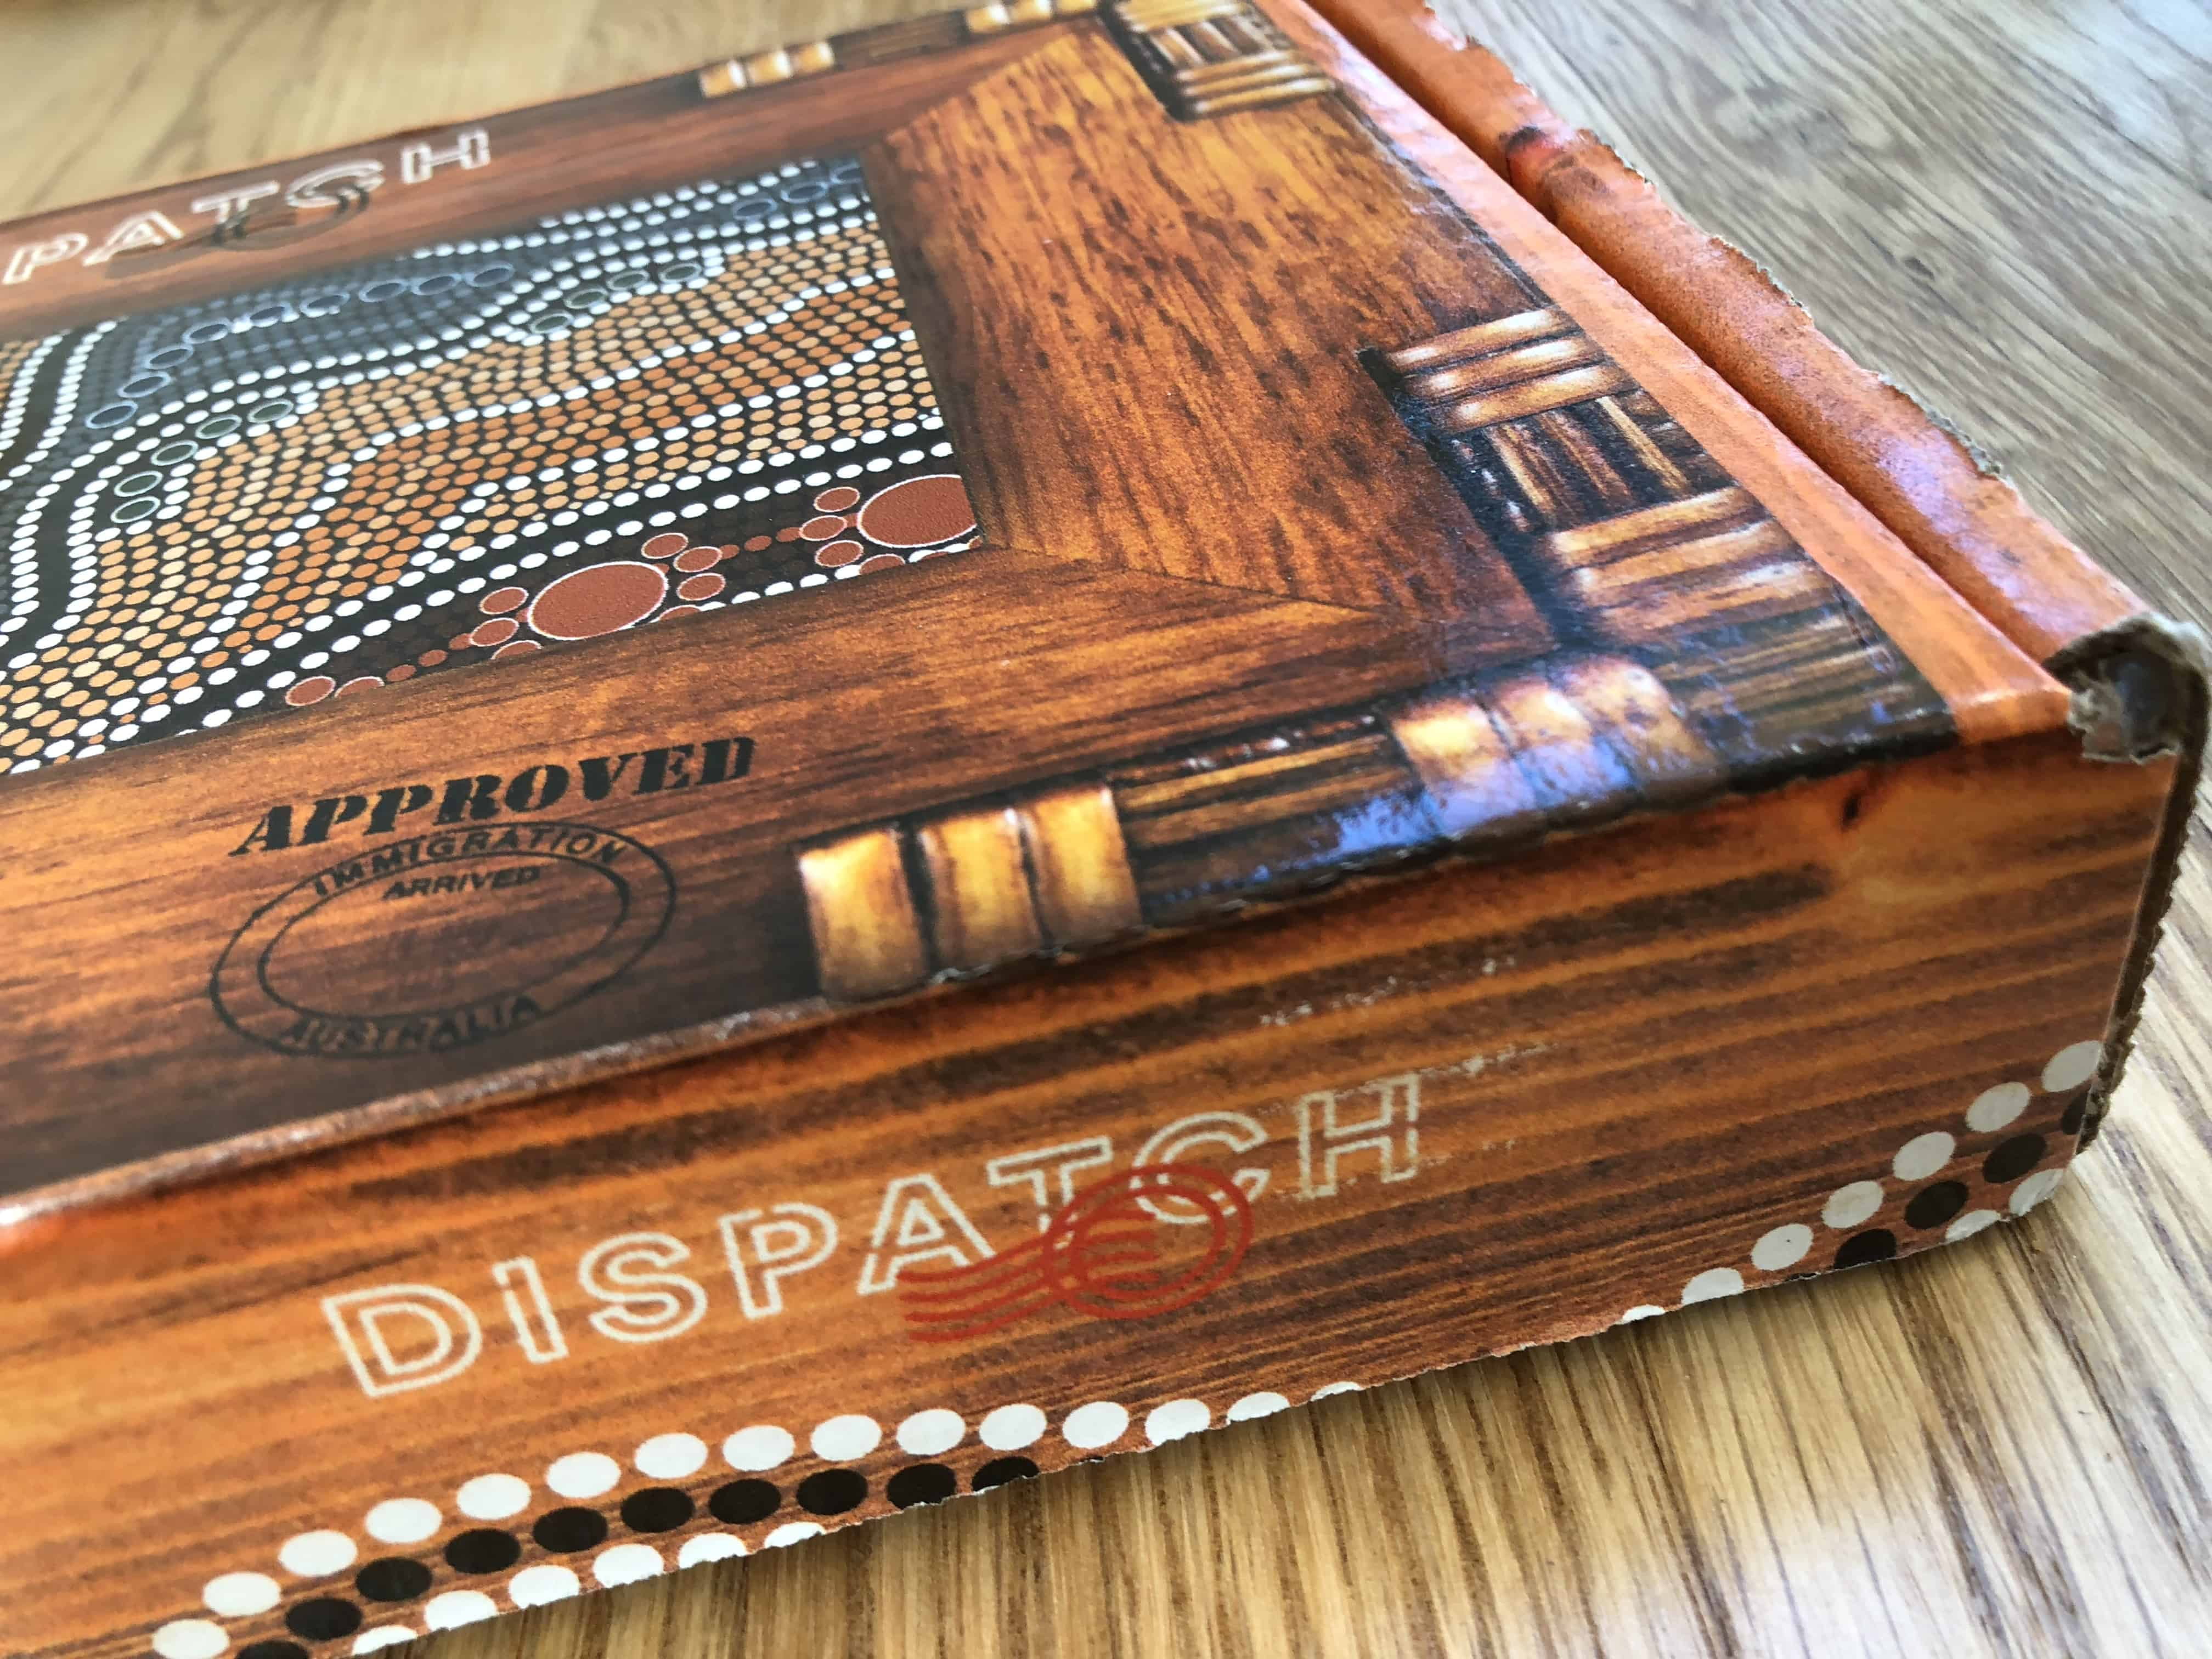 Dispatch by Breakout Games Subscription Box Review + Coupon – On The Run Series Part 4